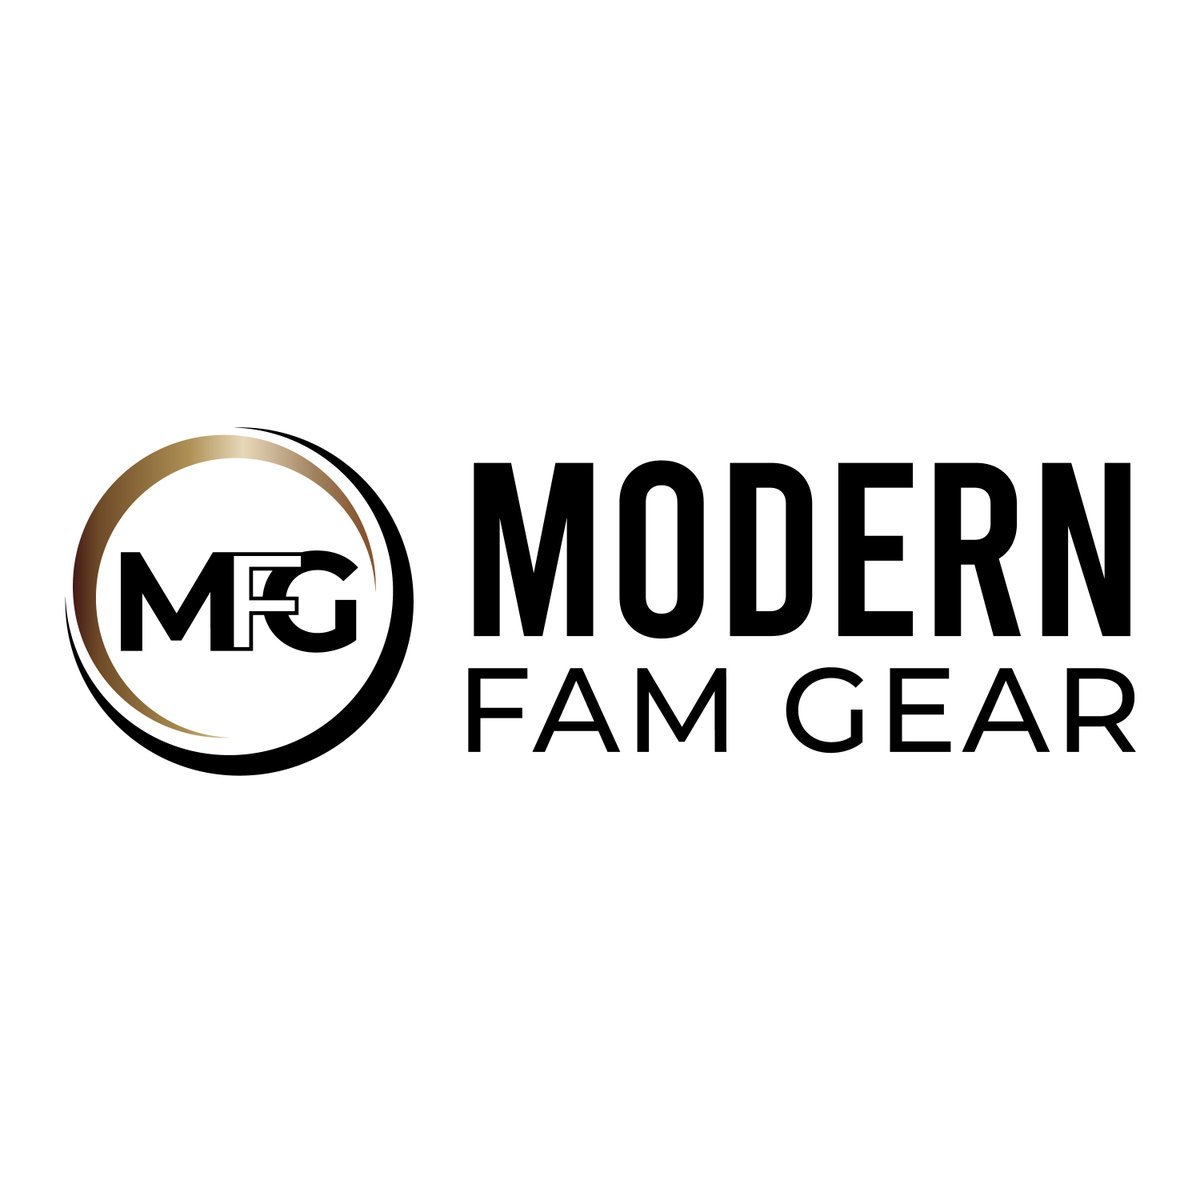 New year, new brand and new design content! My name is Jon & I am currently a stay at home dad creating designs for the modern family & keeping up with current trends! Please like, comment, follow plus share & join me on this new venture!!! #modernfamgear #stayathome #sahdlife